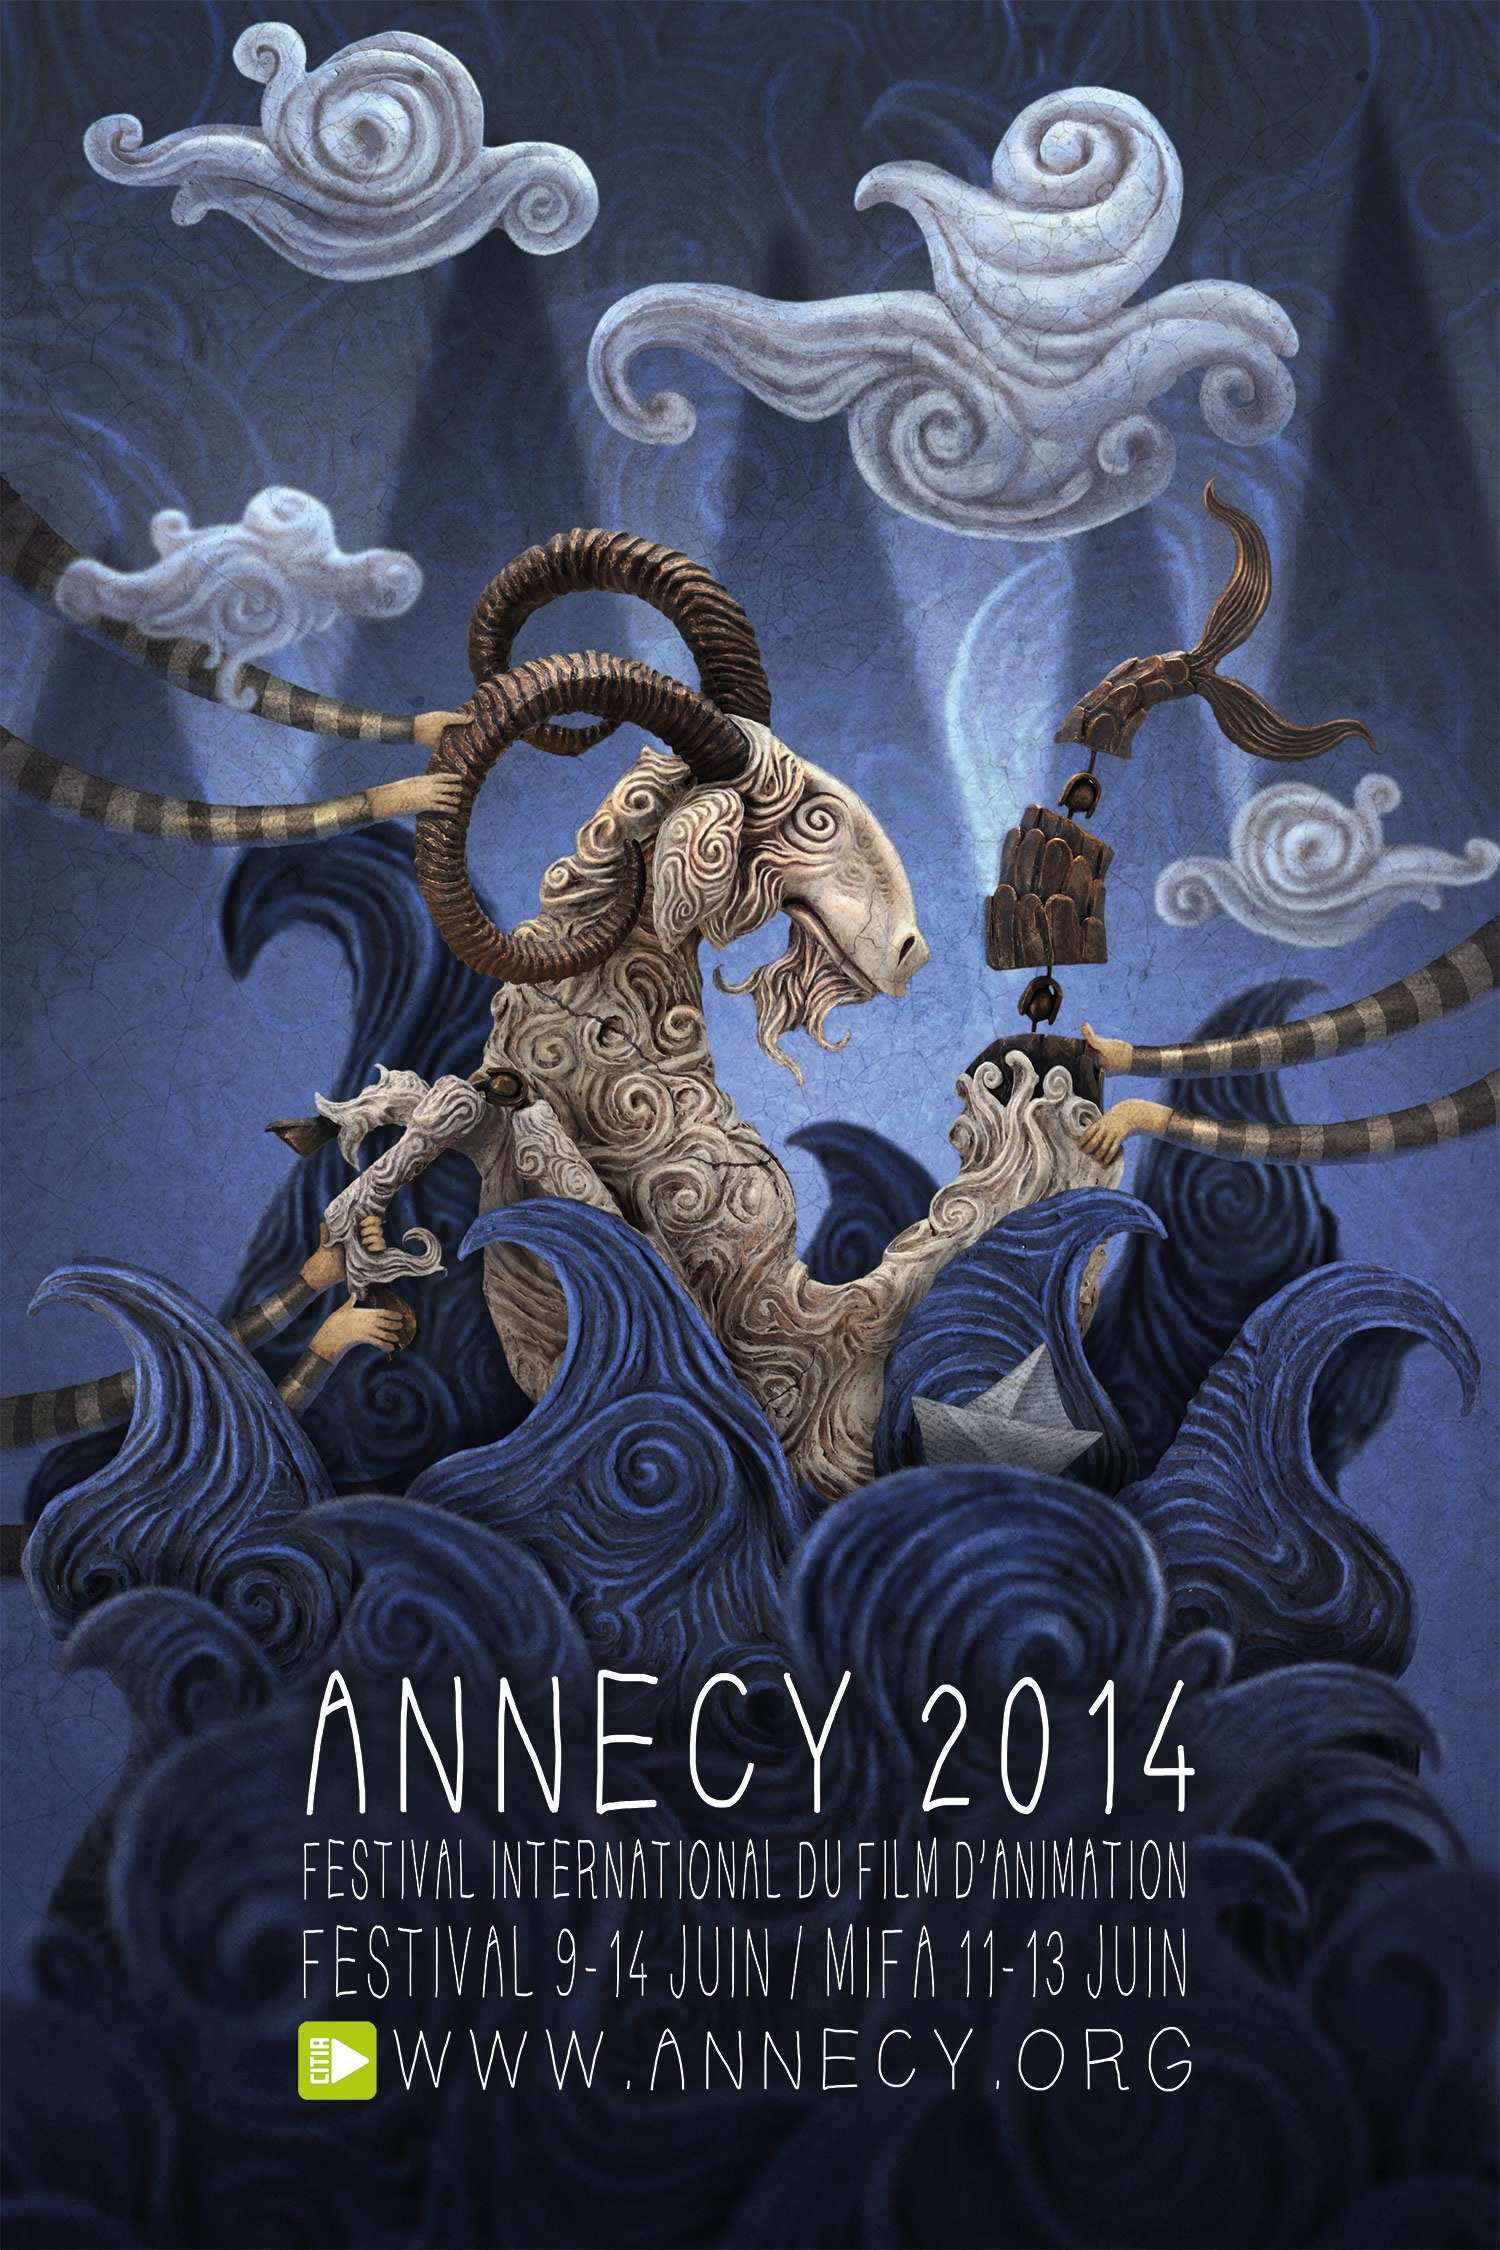 Annecy 2014 Poster By Franck Dion